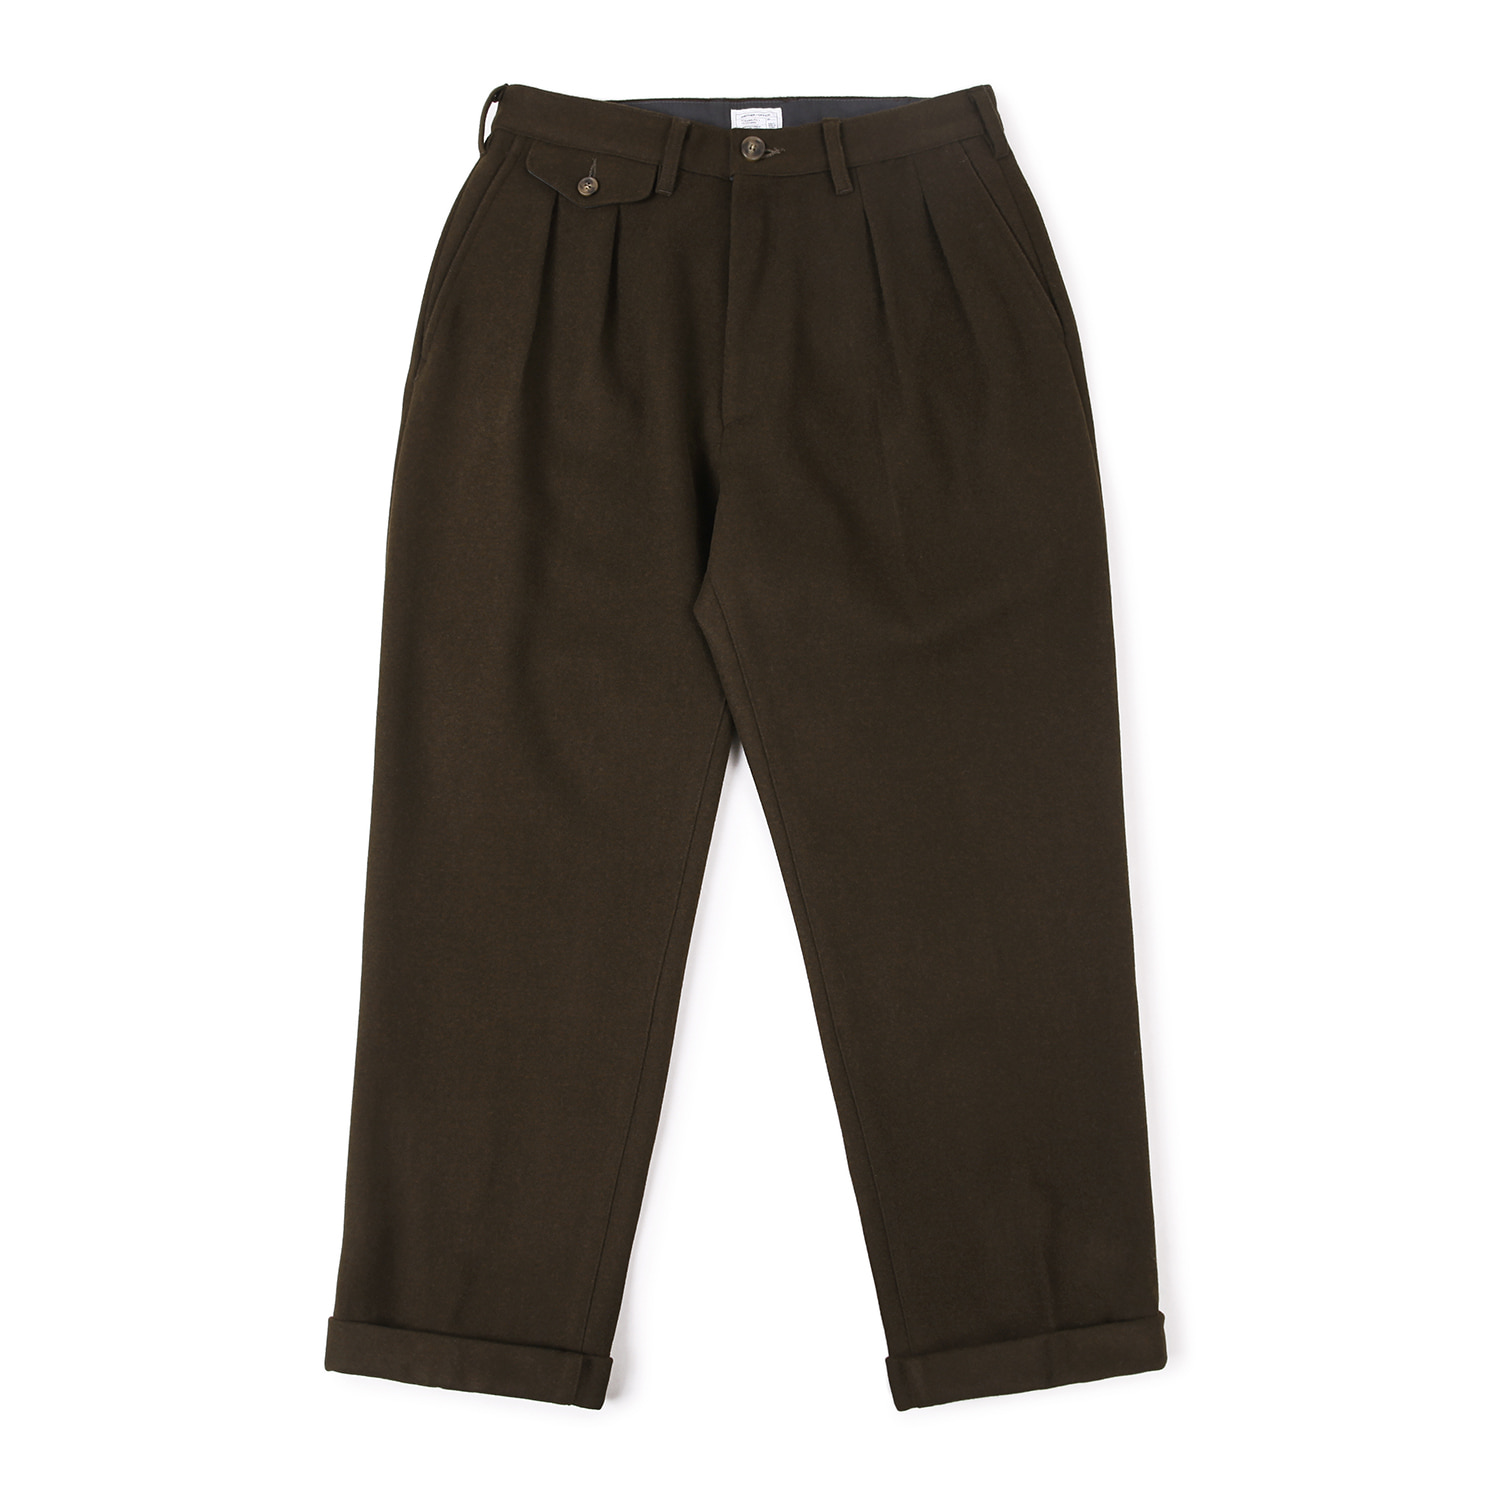 25% OFF_Balance Wool Turn-up Pants (Brown)